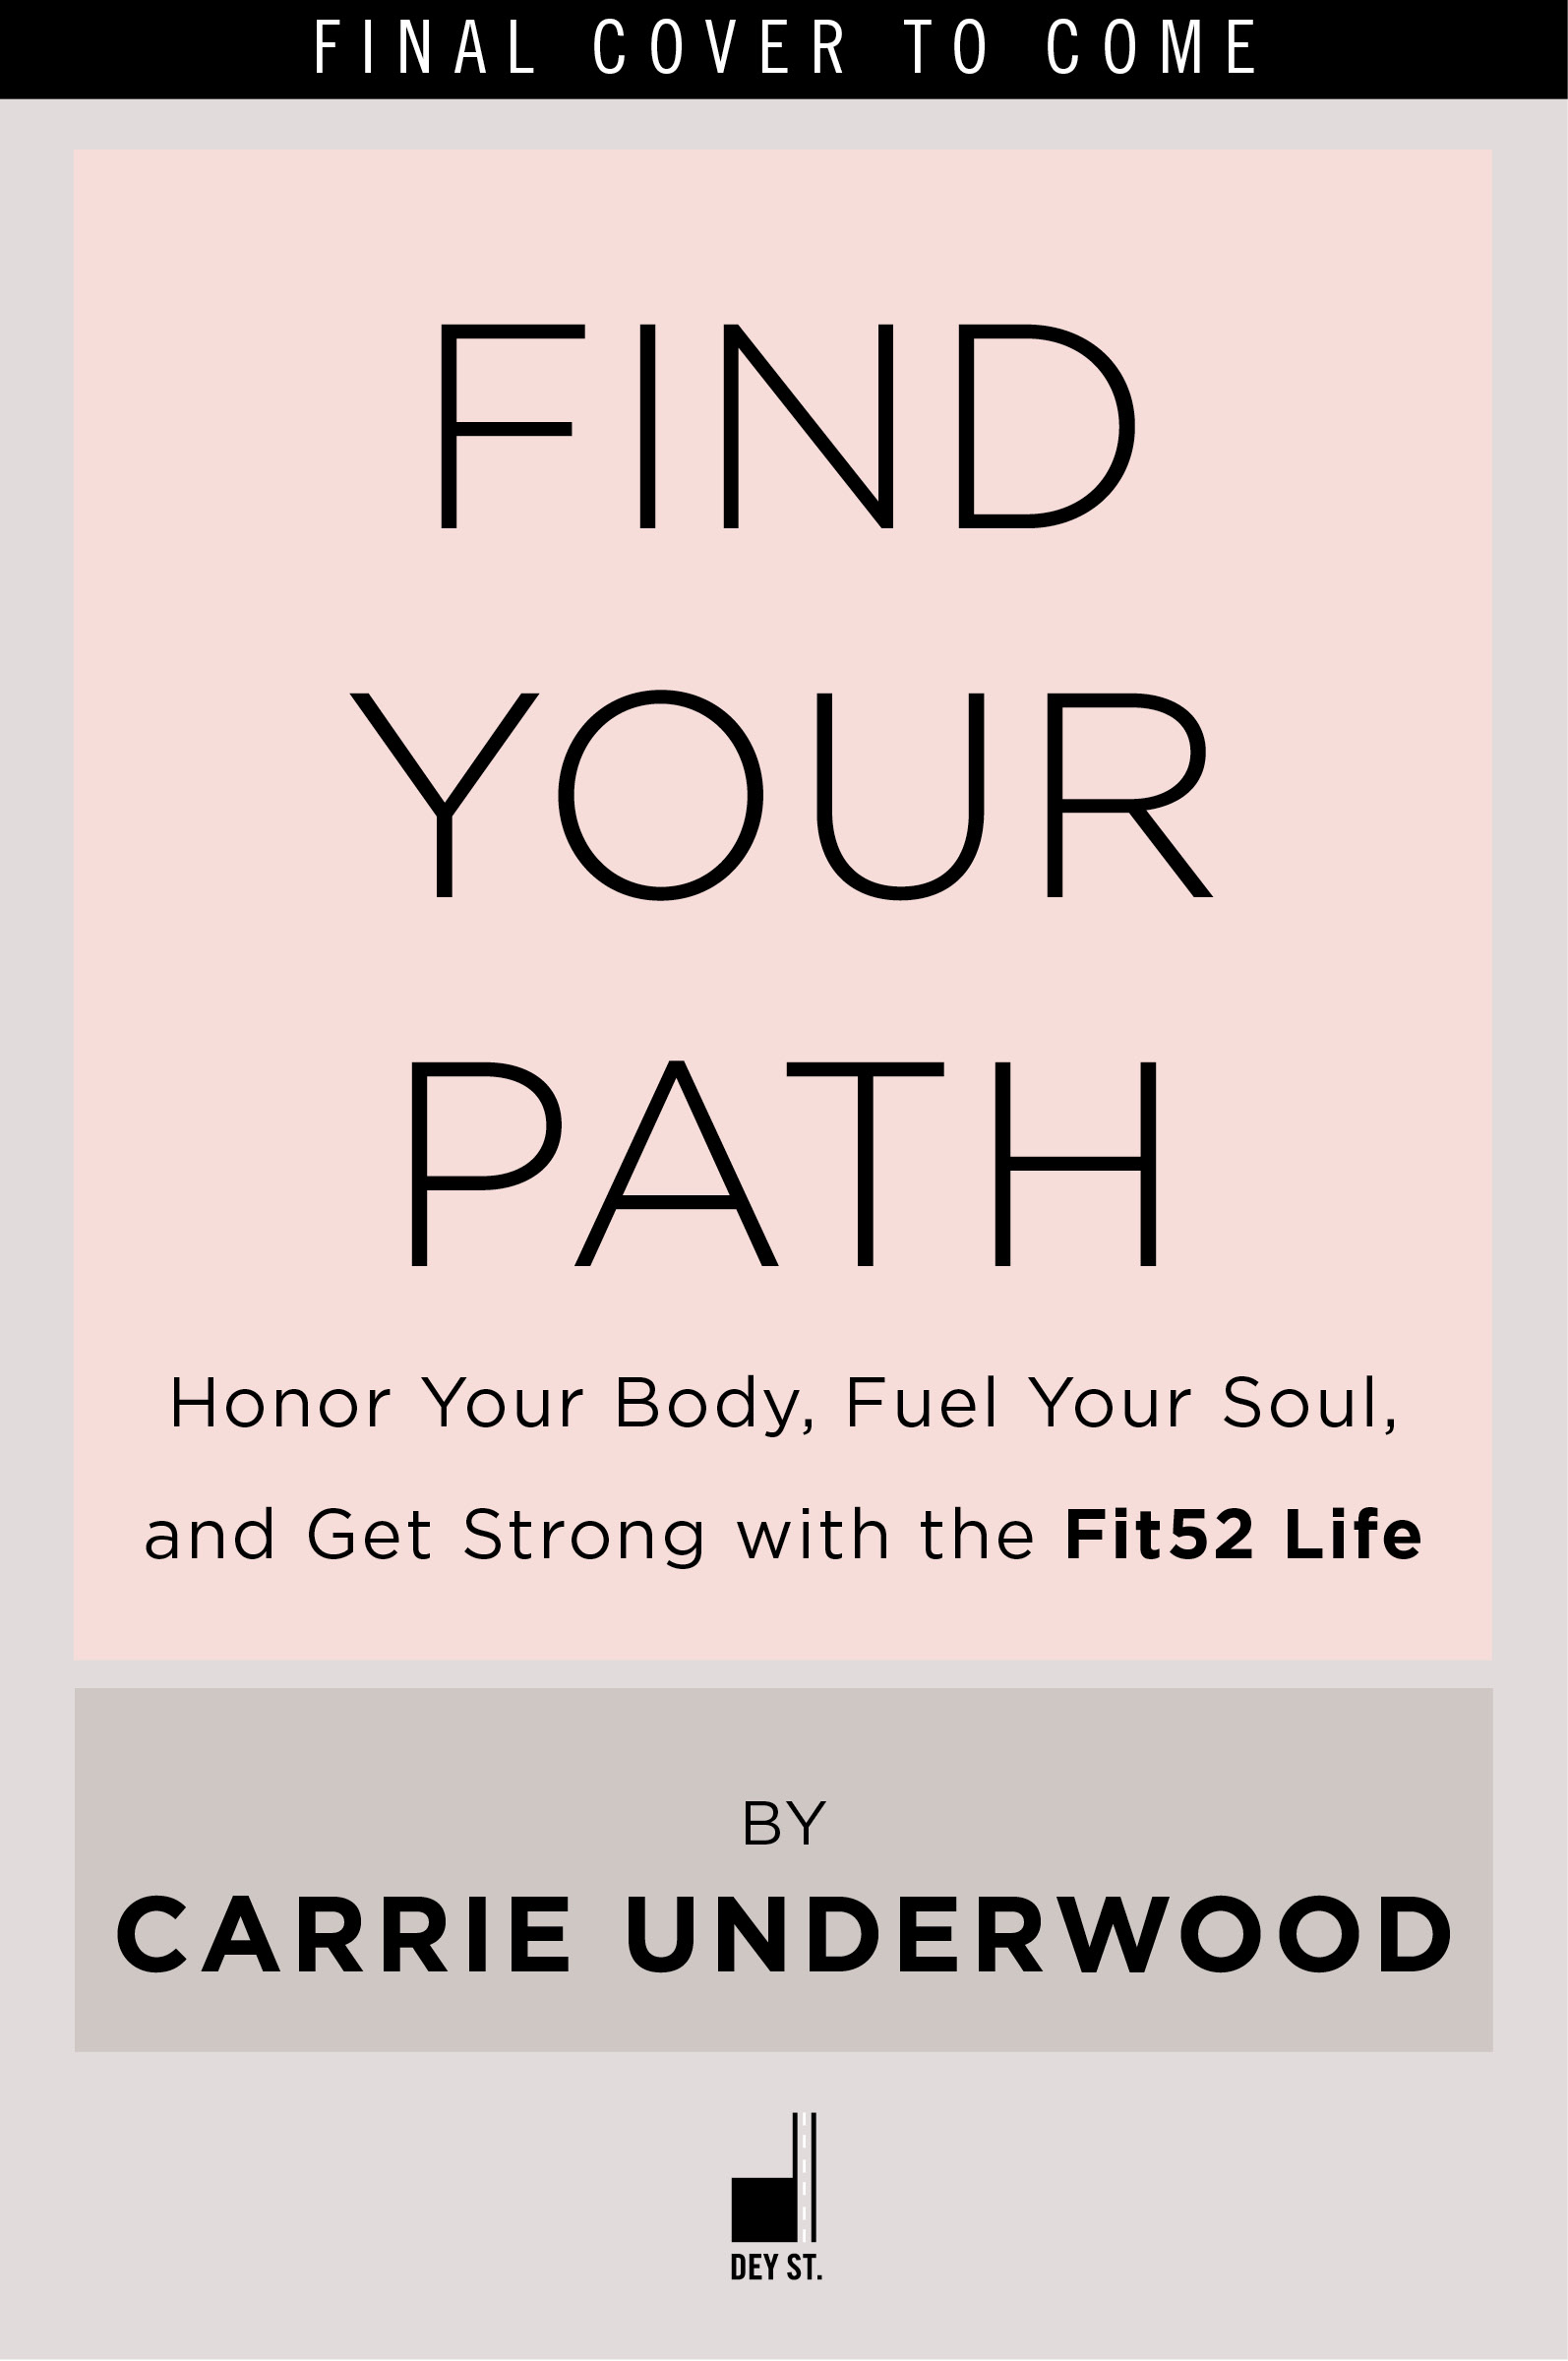 DEY STREET BOOKS TO PUBLISH DEBUT FITNESS & LIFESTYLE BOOK BY CARRIE